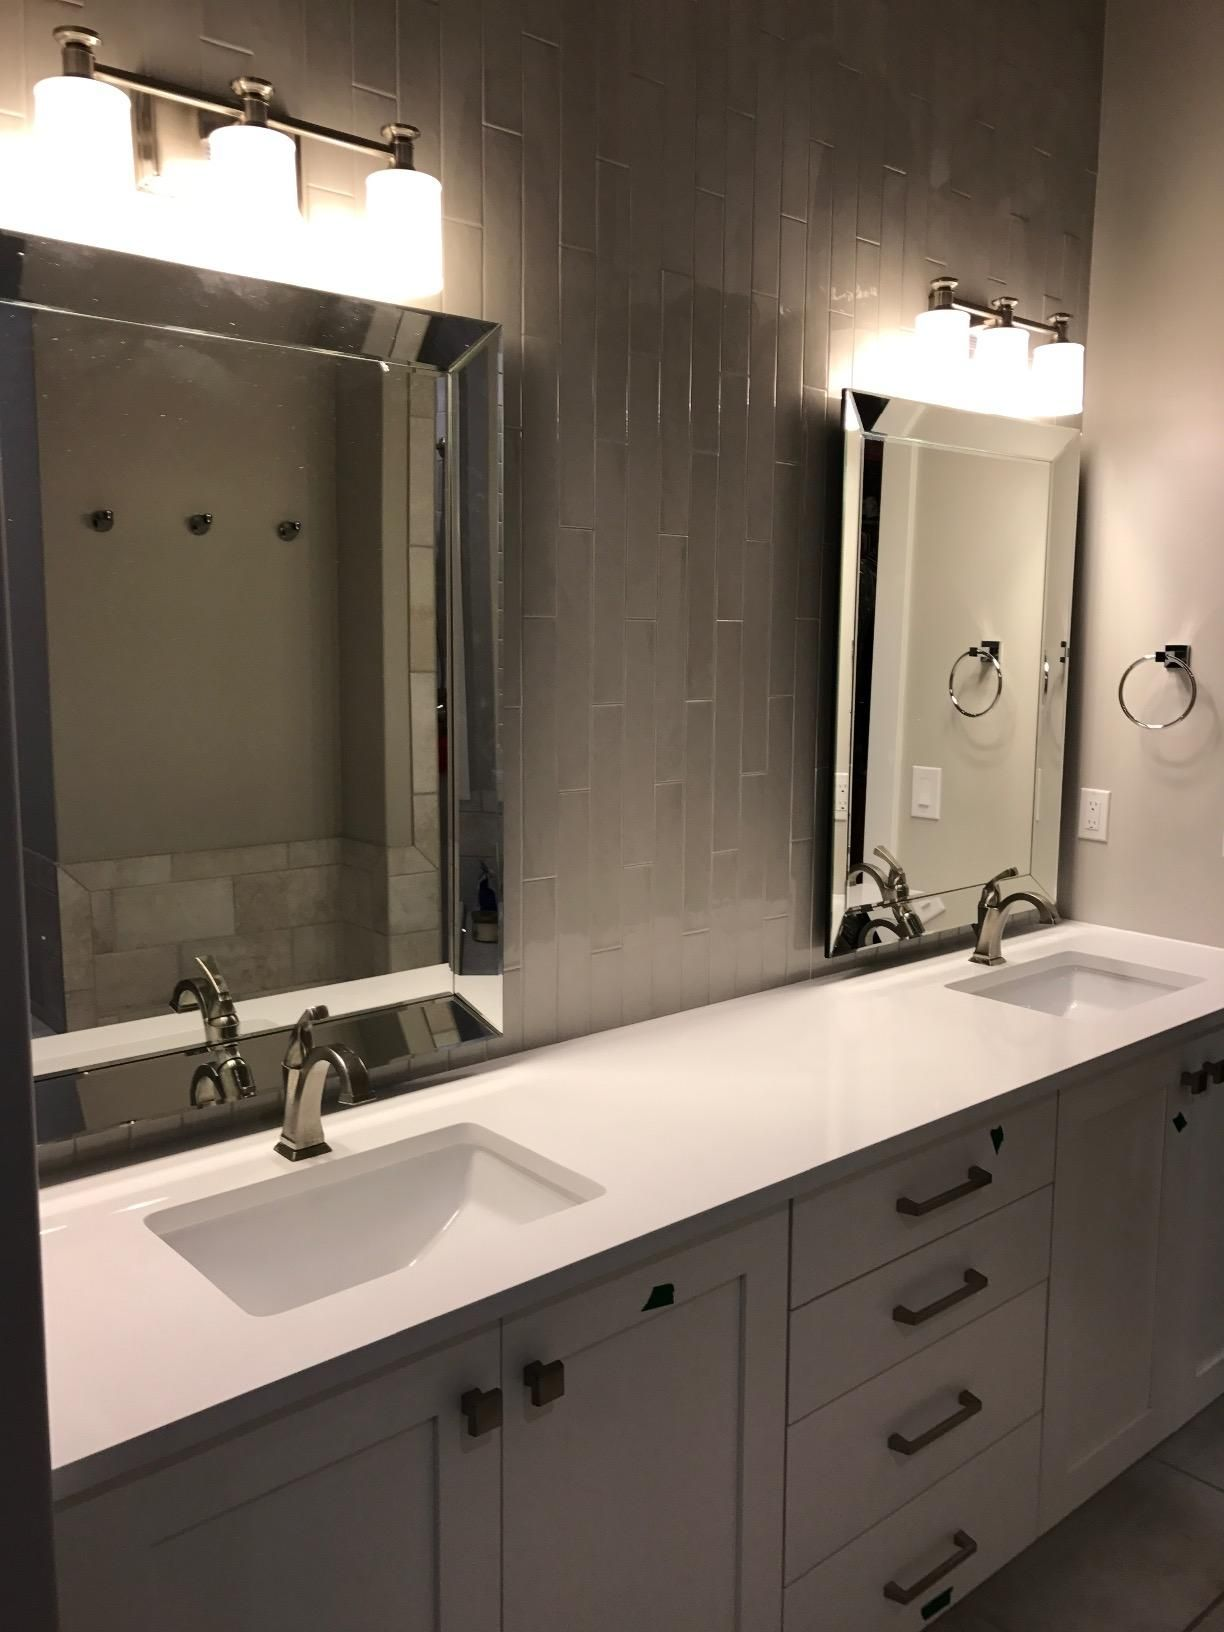 A large rectangular mirror, wide range of reflective